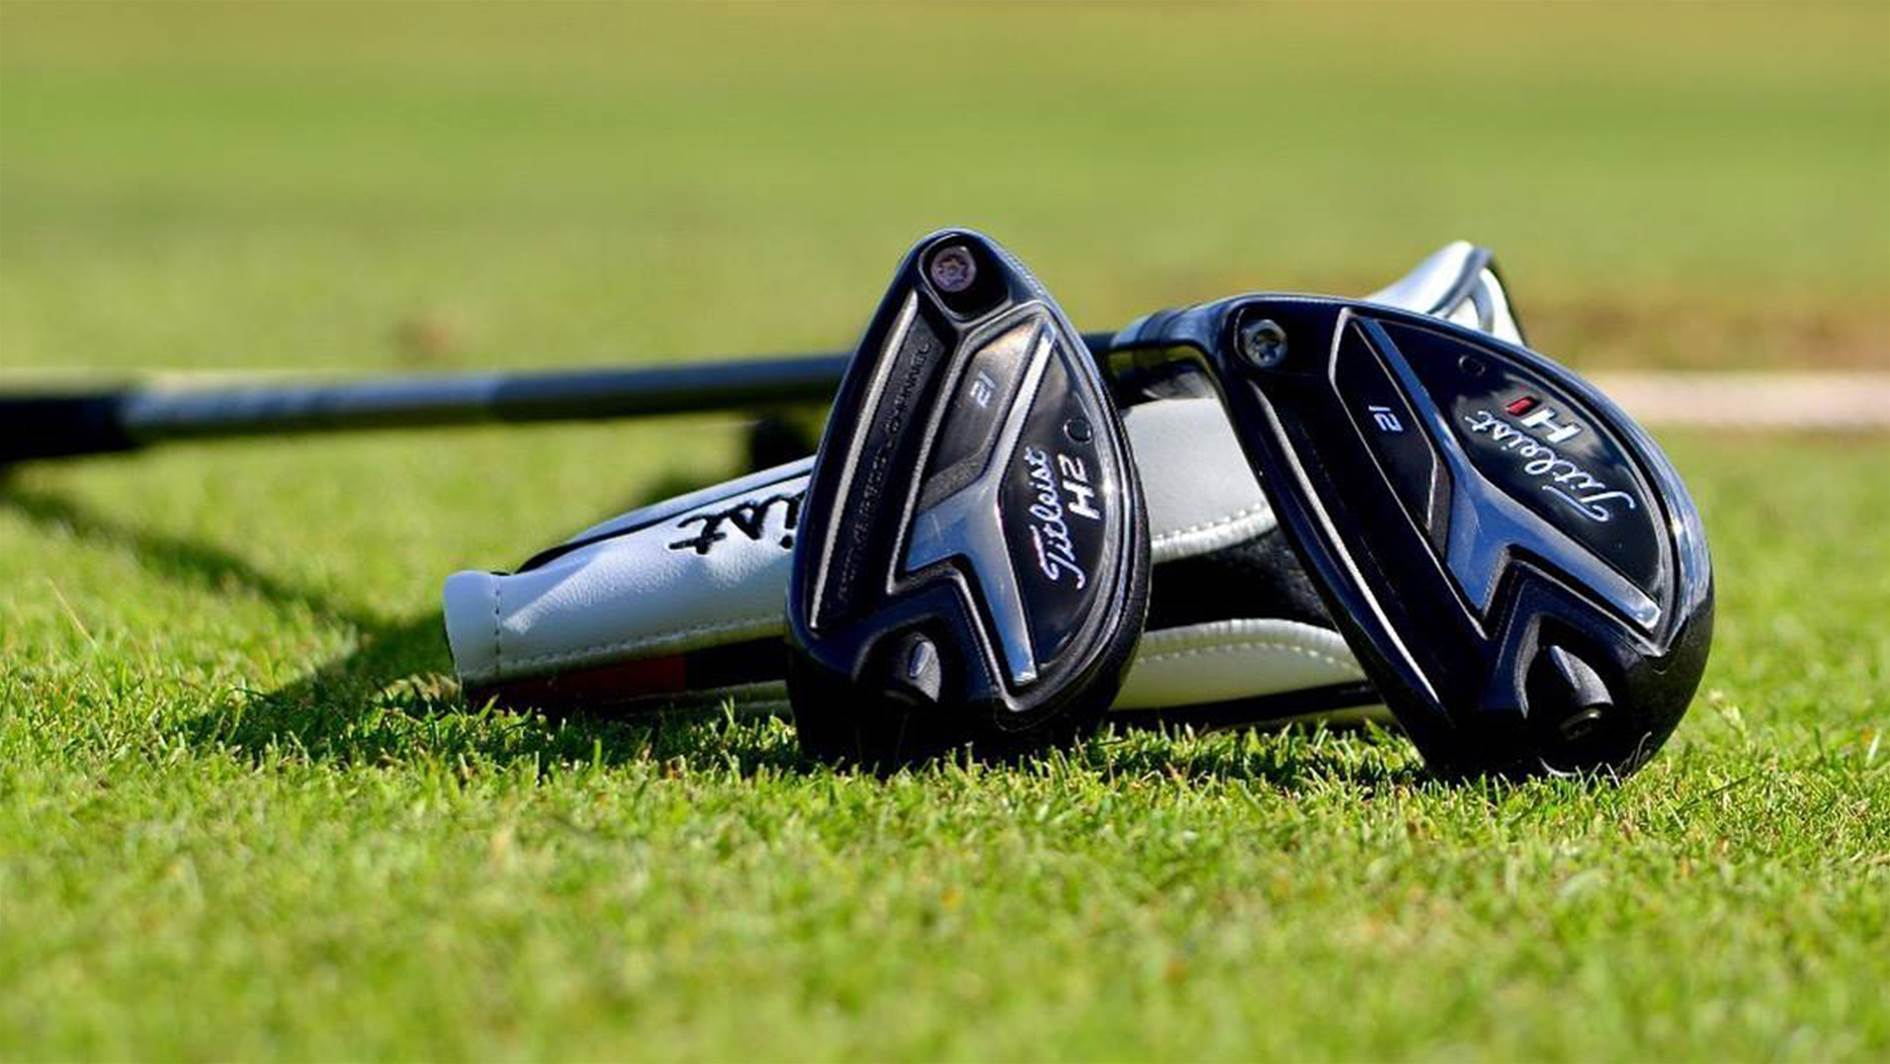 Titleist launch 818 hybrid prototypes on Tour